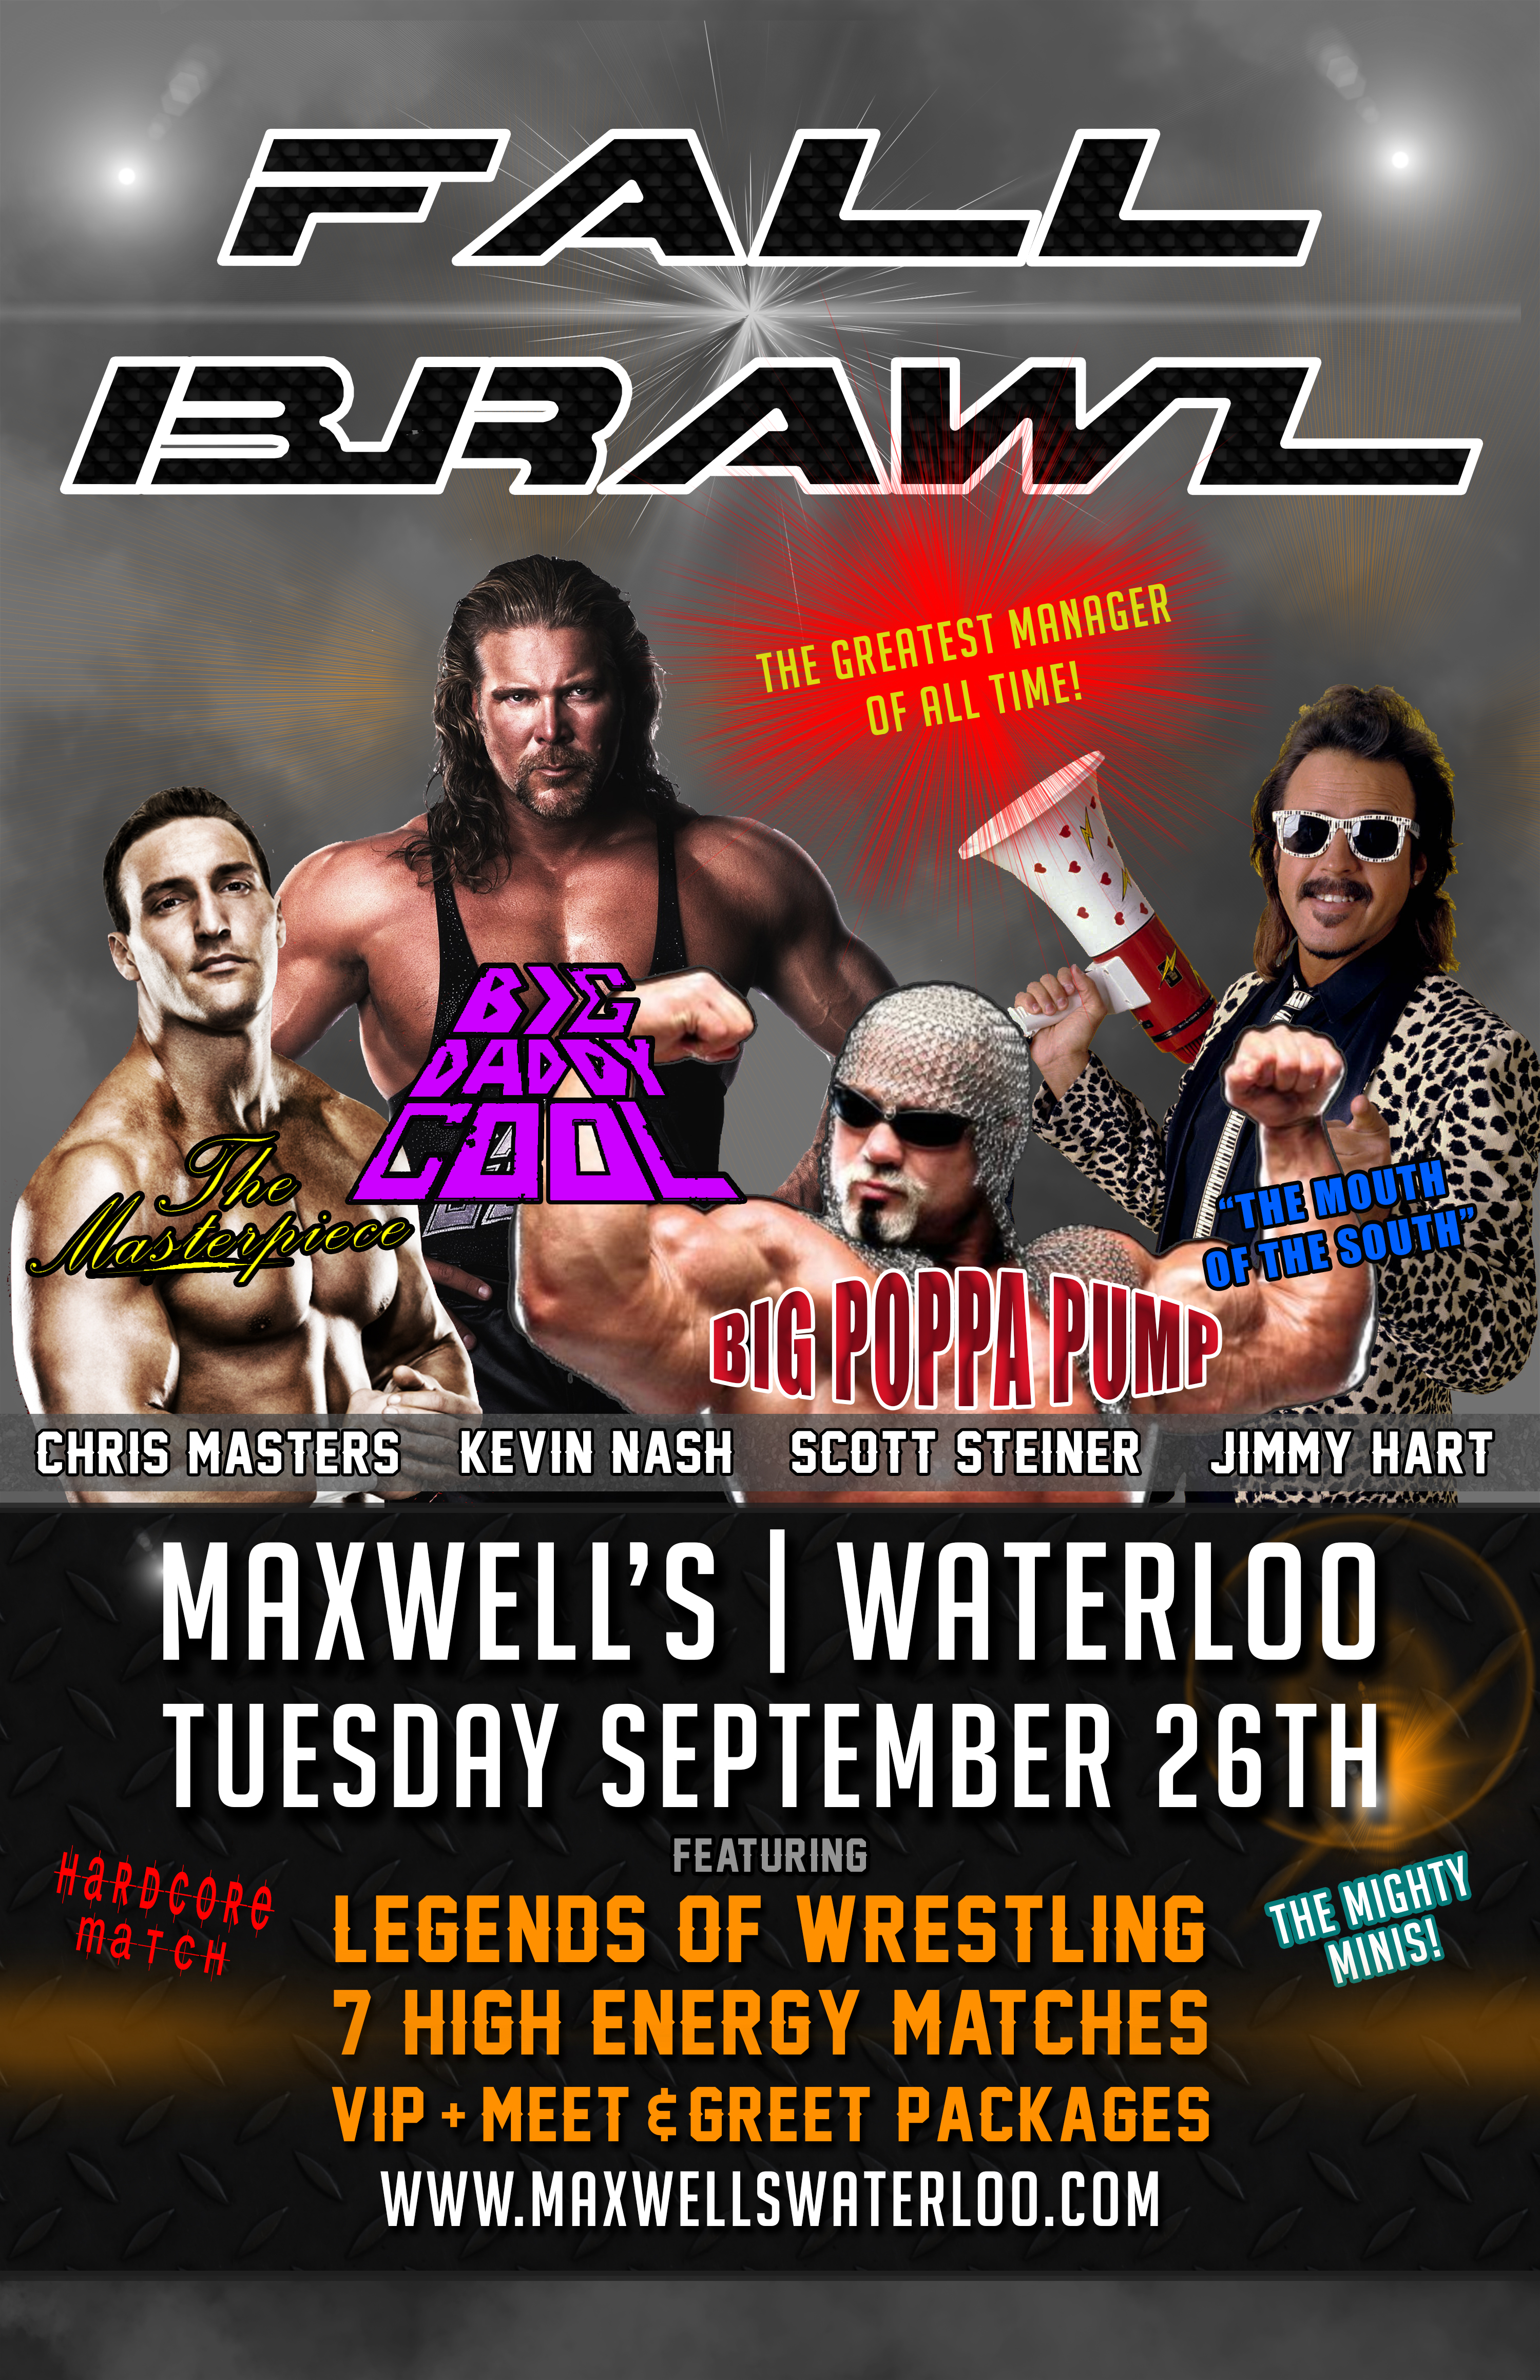 Fall Brawl Maxwells Concerts And Events